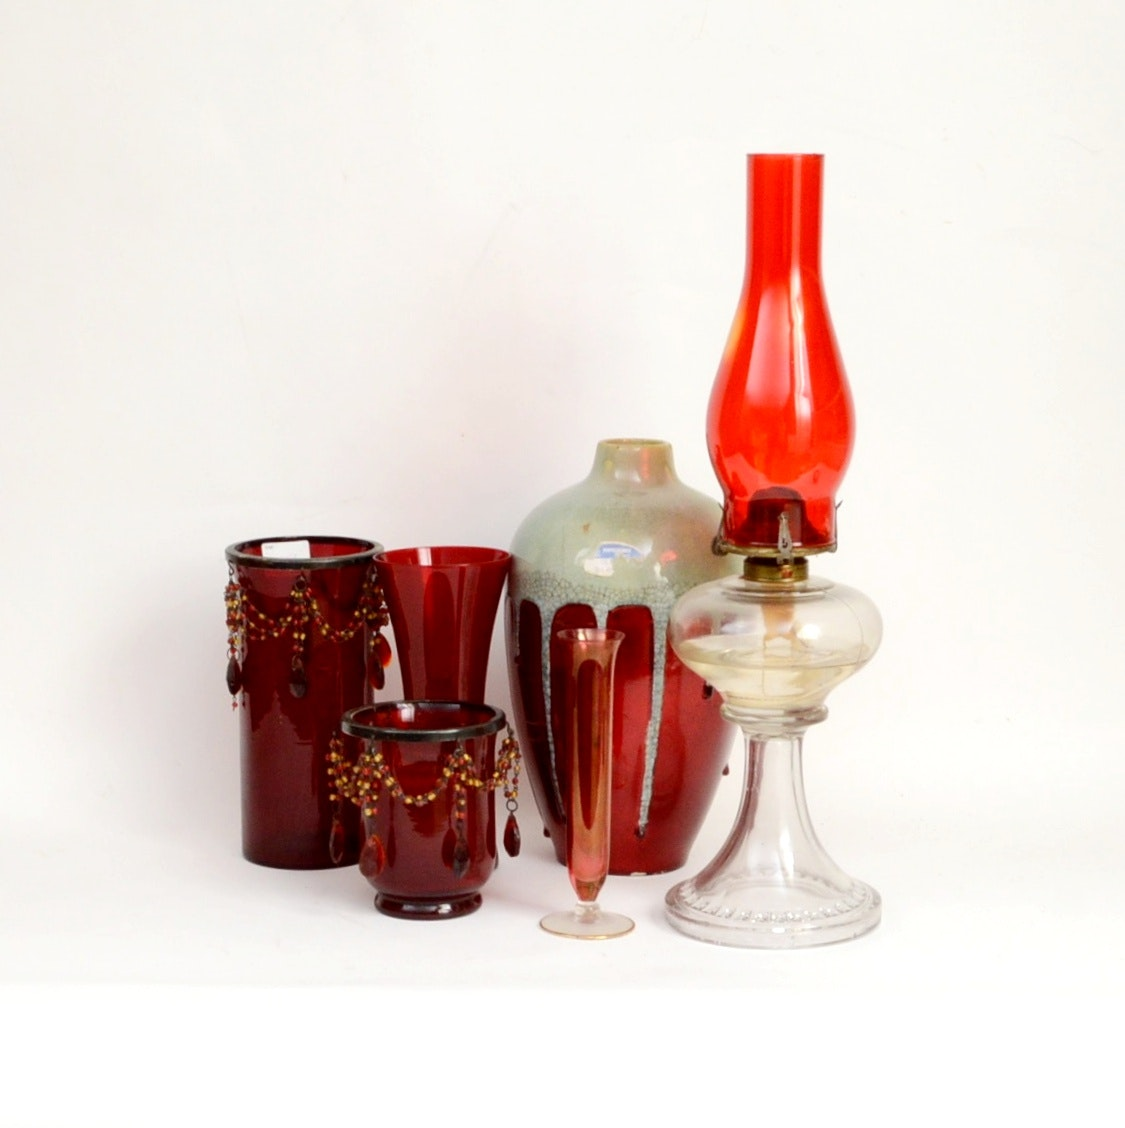 Antique Oil Lamp with Red Glass and Red Glass Decor